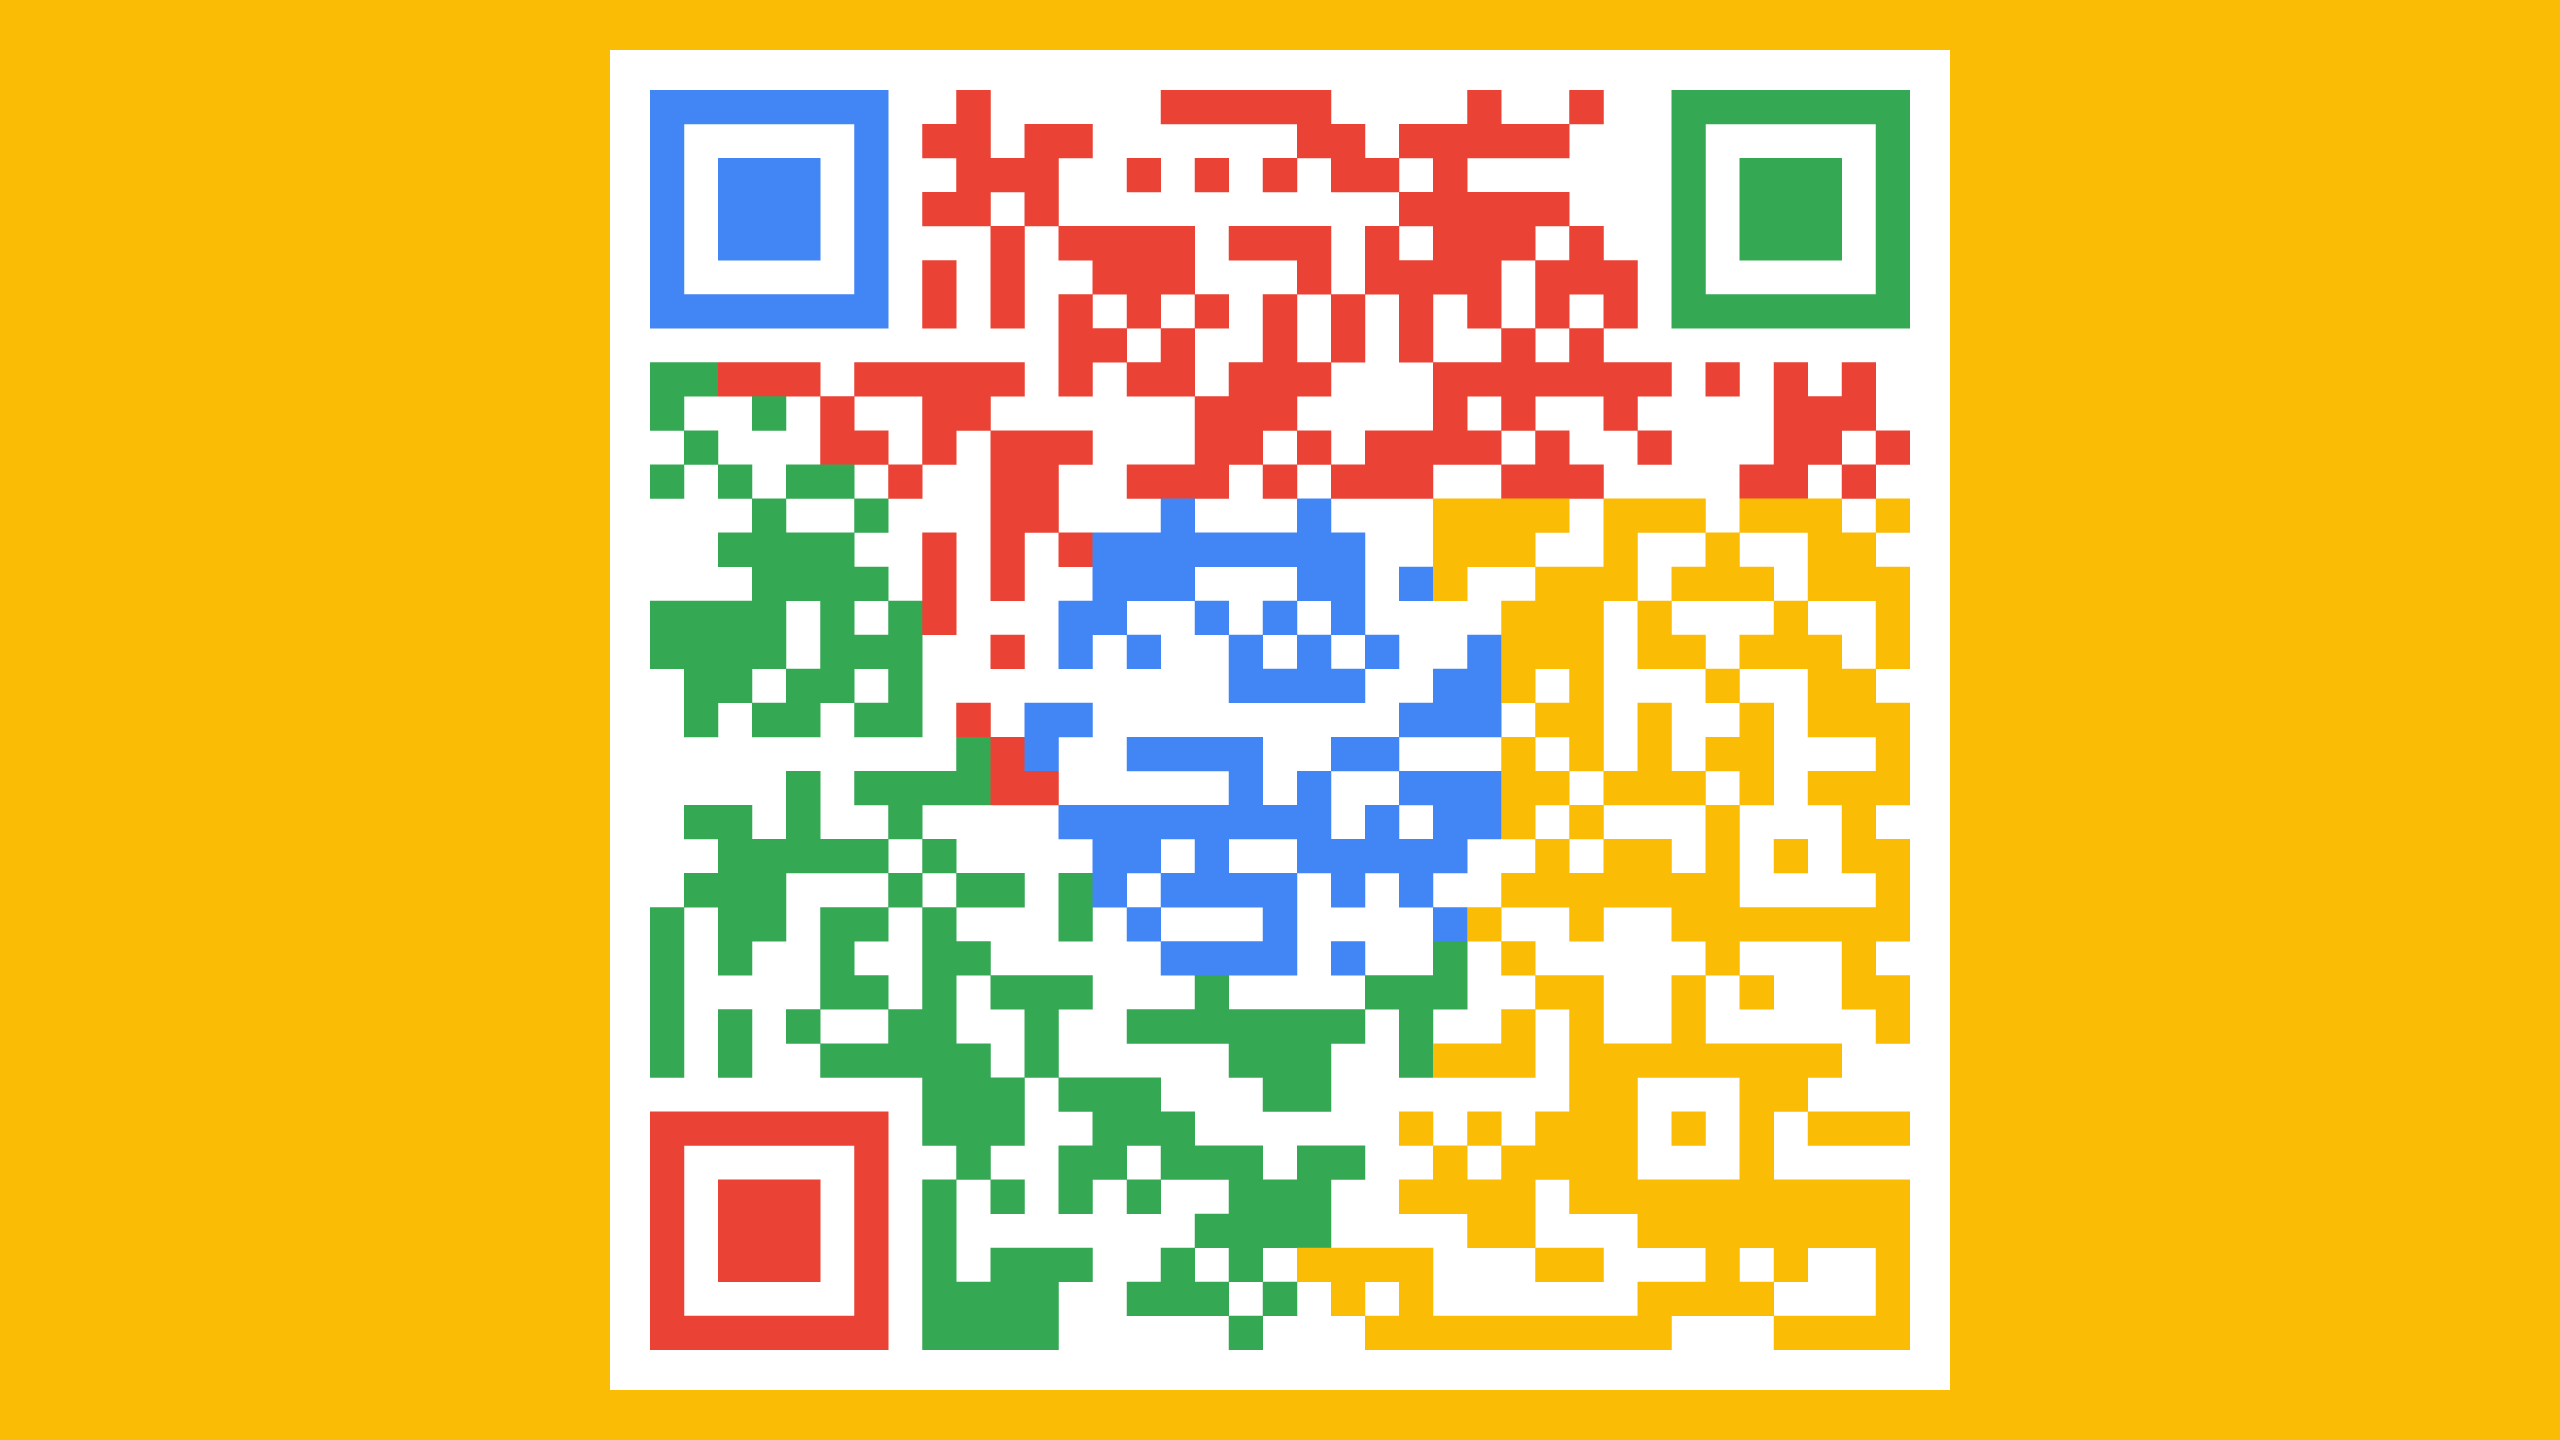 Google Chrome gets its own QR code & barcode scanner | TechCrunch